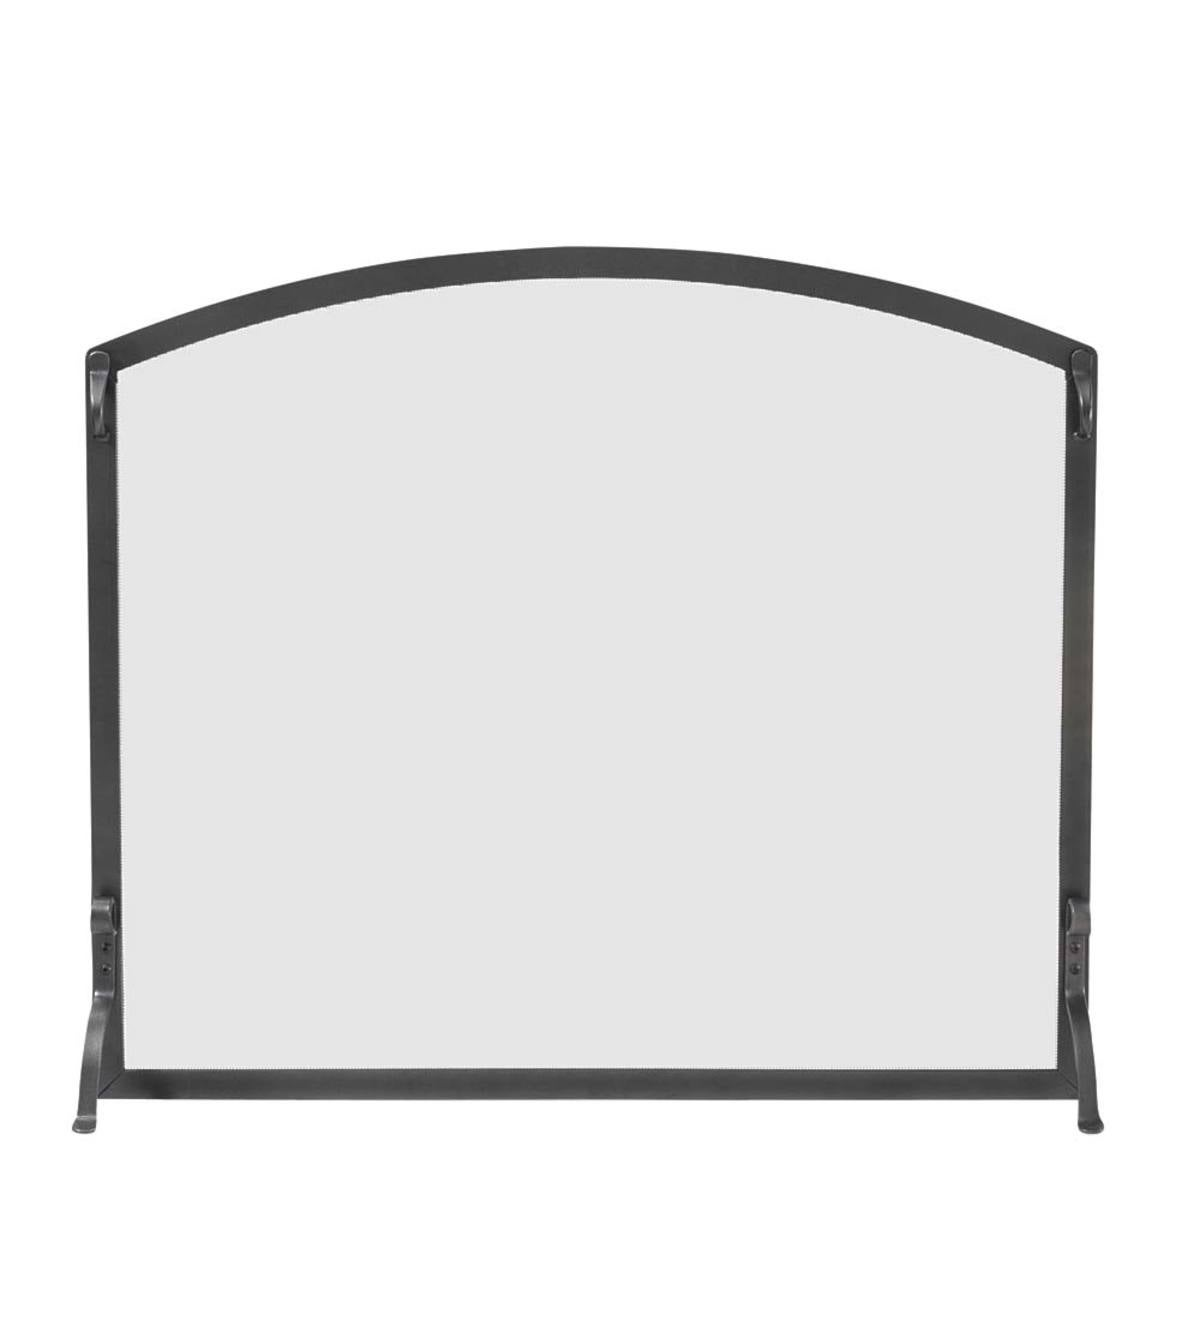 Small Custom Flat Guard with Arched Top - under 1,350 sq. inches